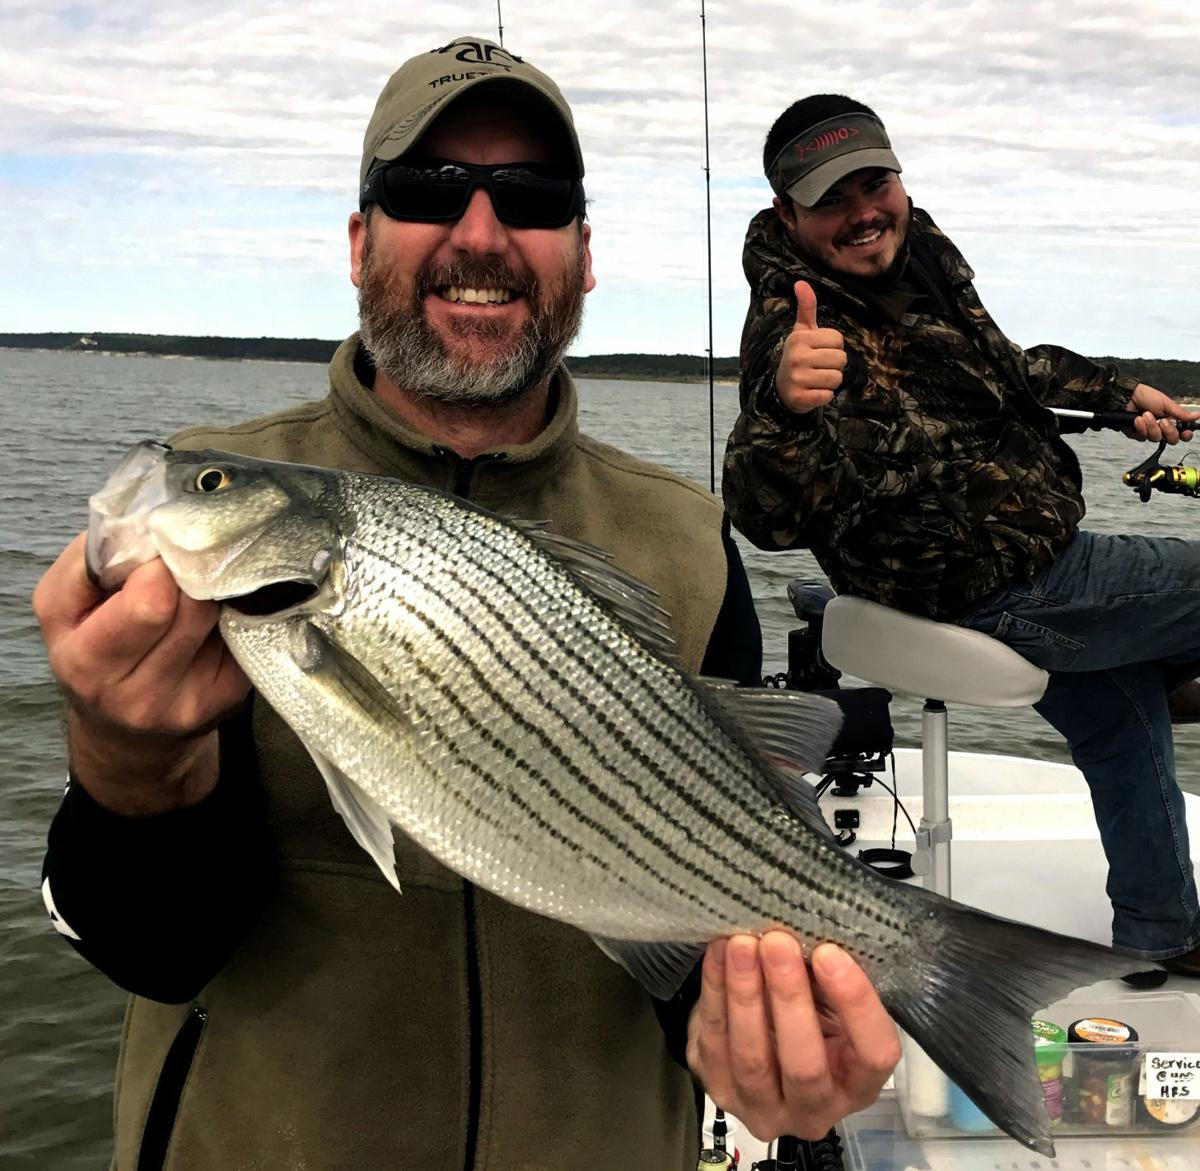 Bob Maindelle Guide Lines Dec. 4